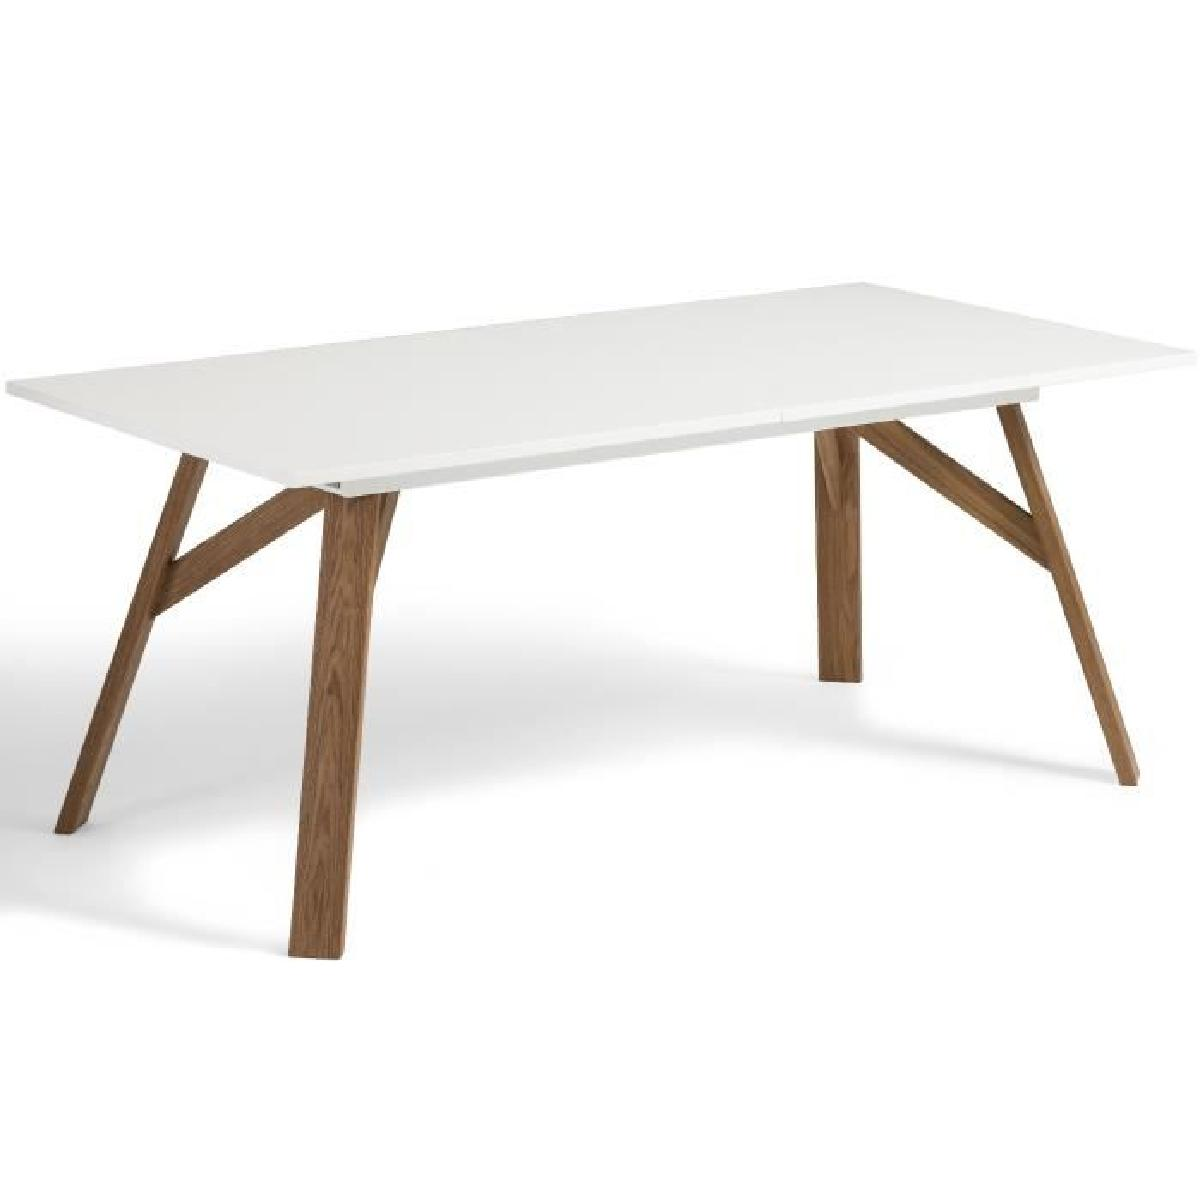 Table extensible blanche scandinave